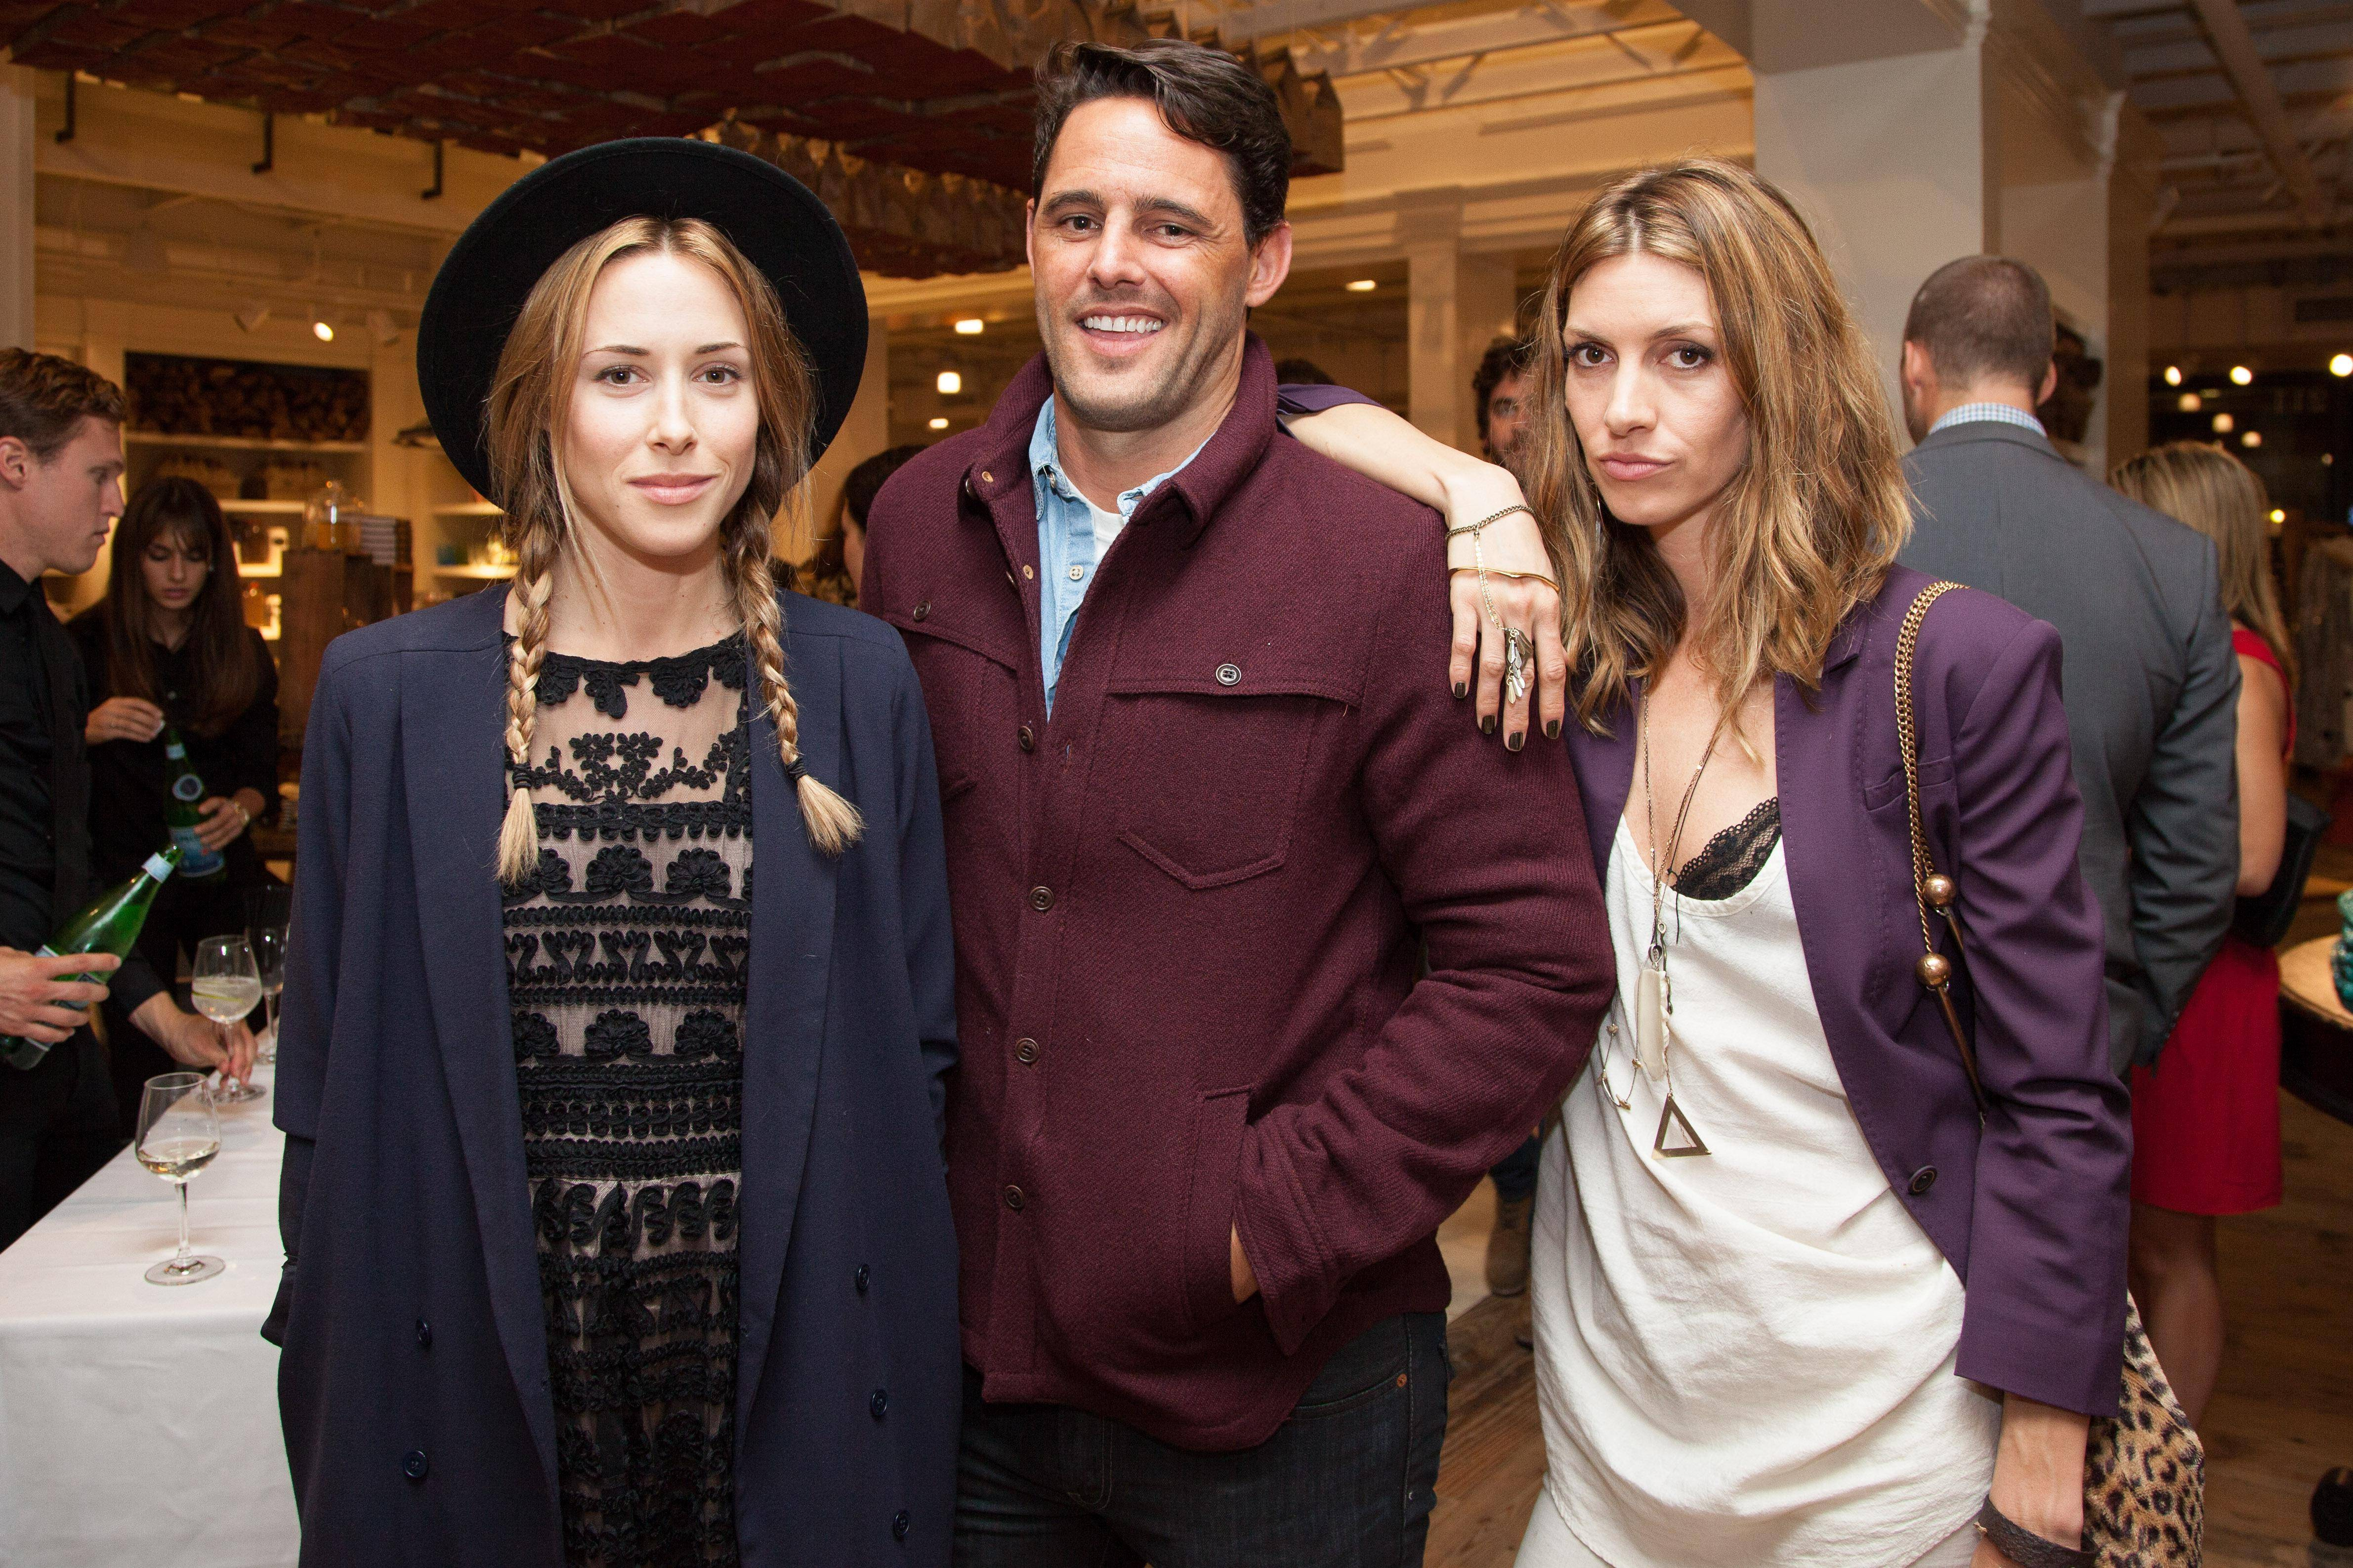 ANTHROPOLOGIE Celebrates An Exclusive Collaboration by YOANA BARASHCI and CONSCIOUS COMMERCE in Support of NEW LIGHT INDIA